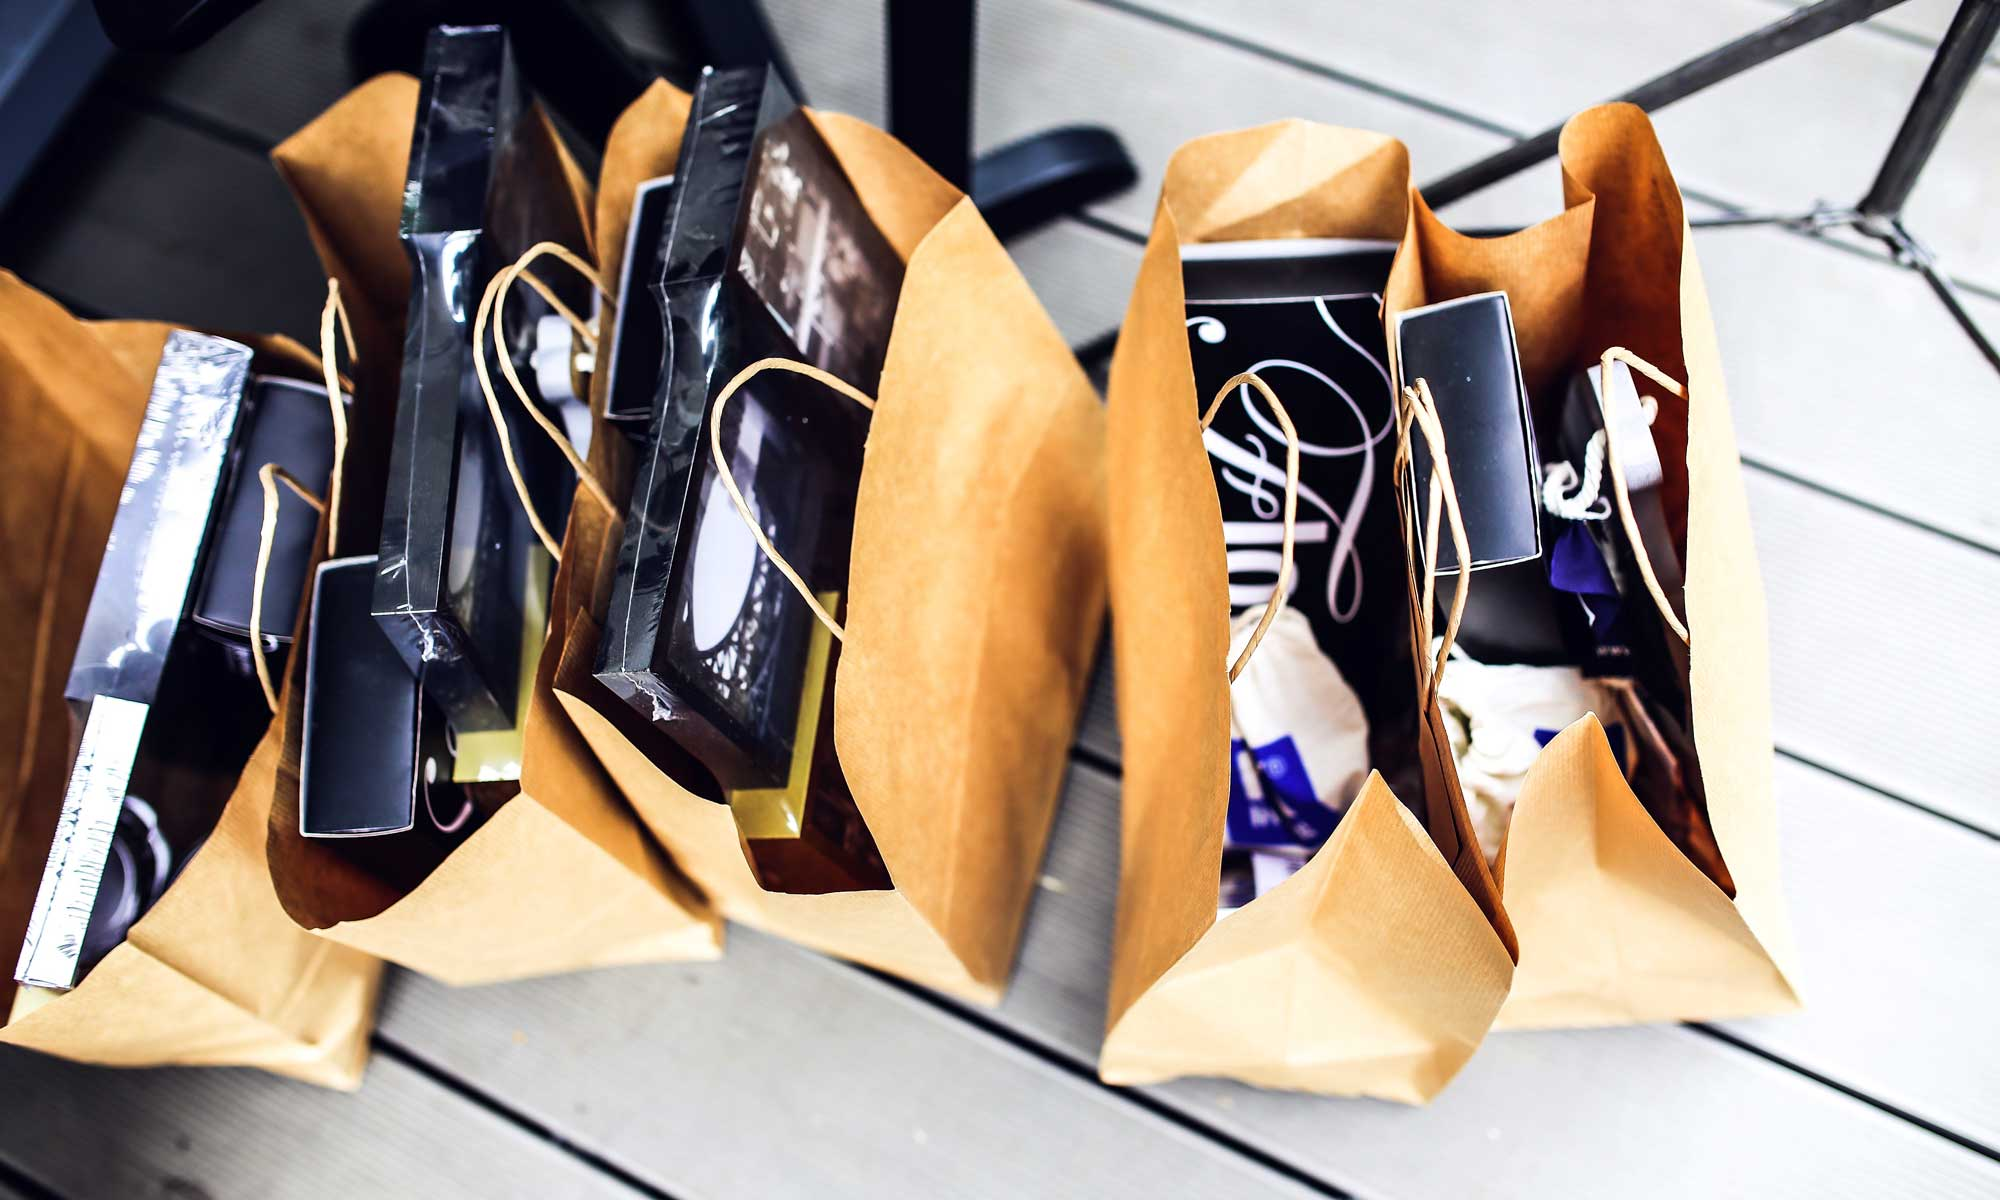 https://www.pexels.com/photo/brown-shopping-bags-5956/